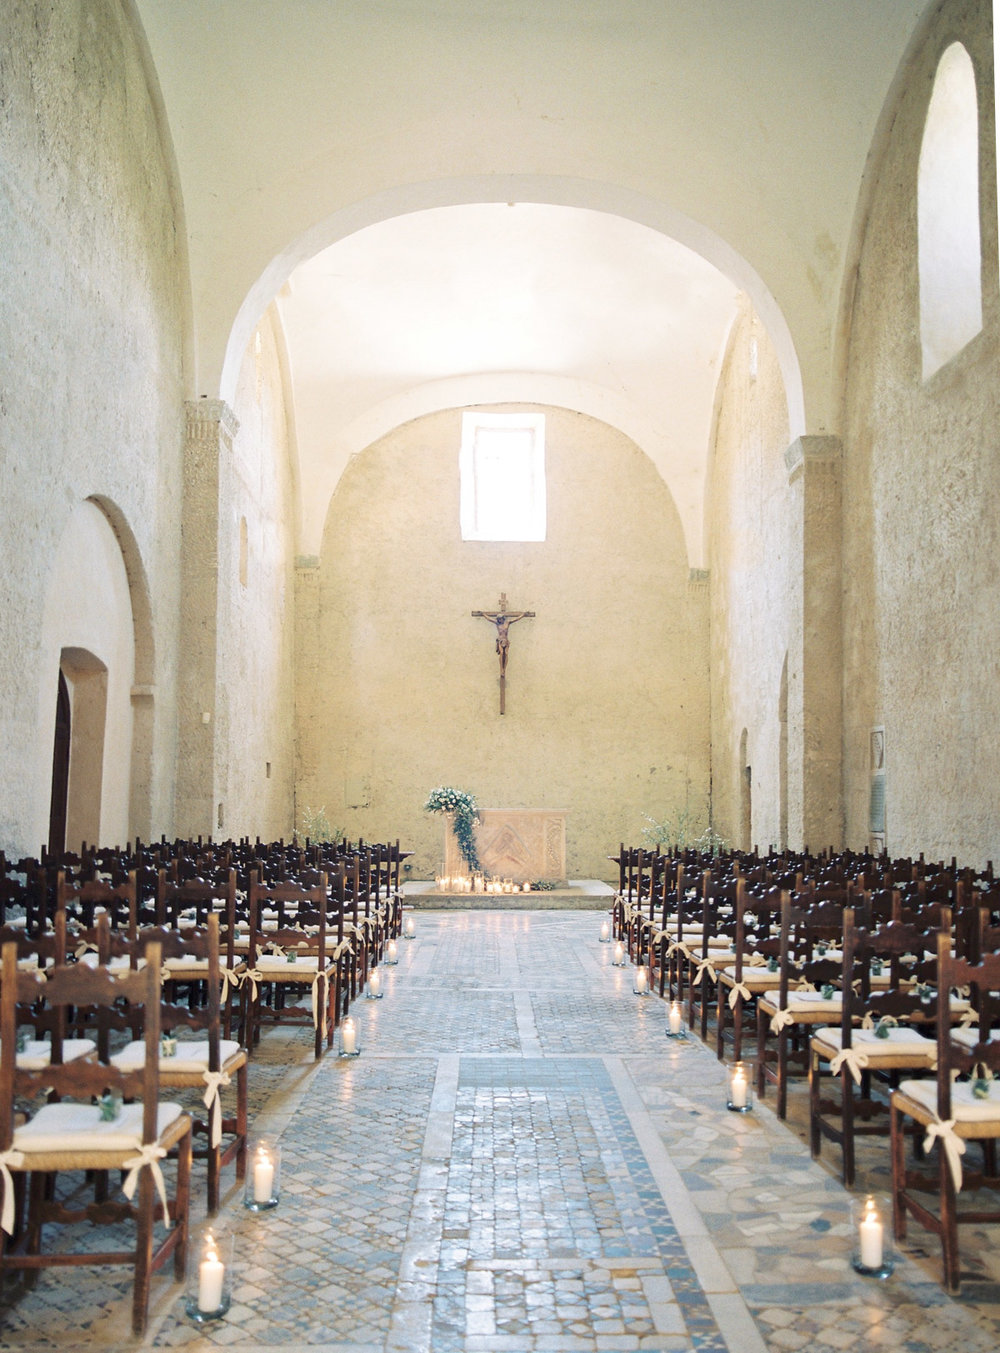 The Badia di Orvieto, four-star hotel, Italy destination wedding location featured on LOVE FIND CO.